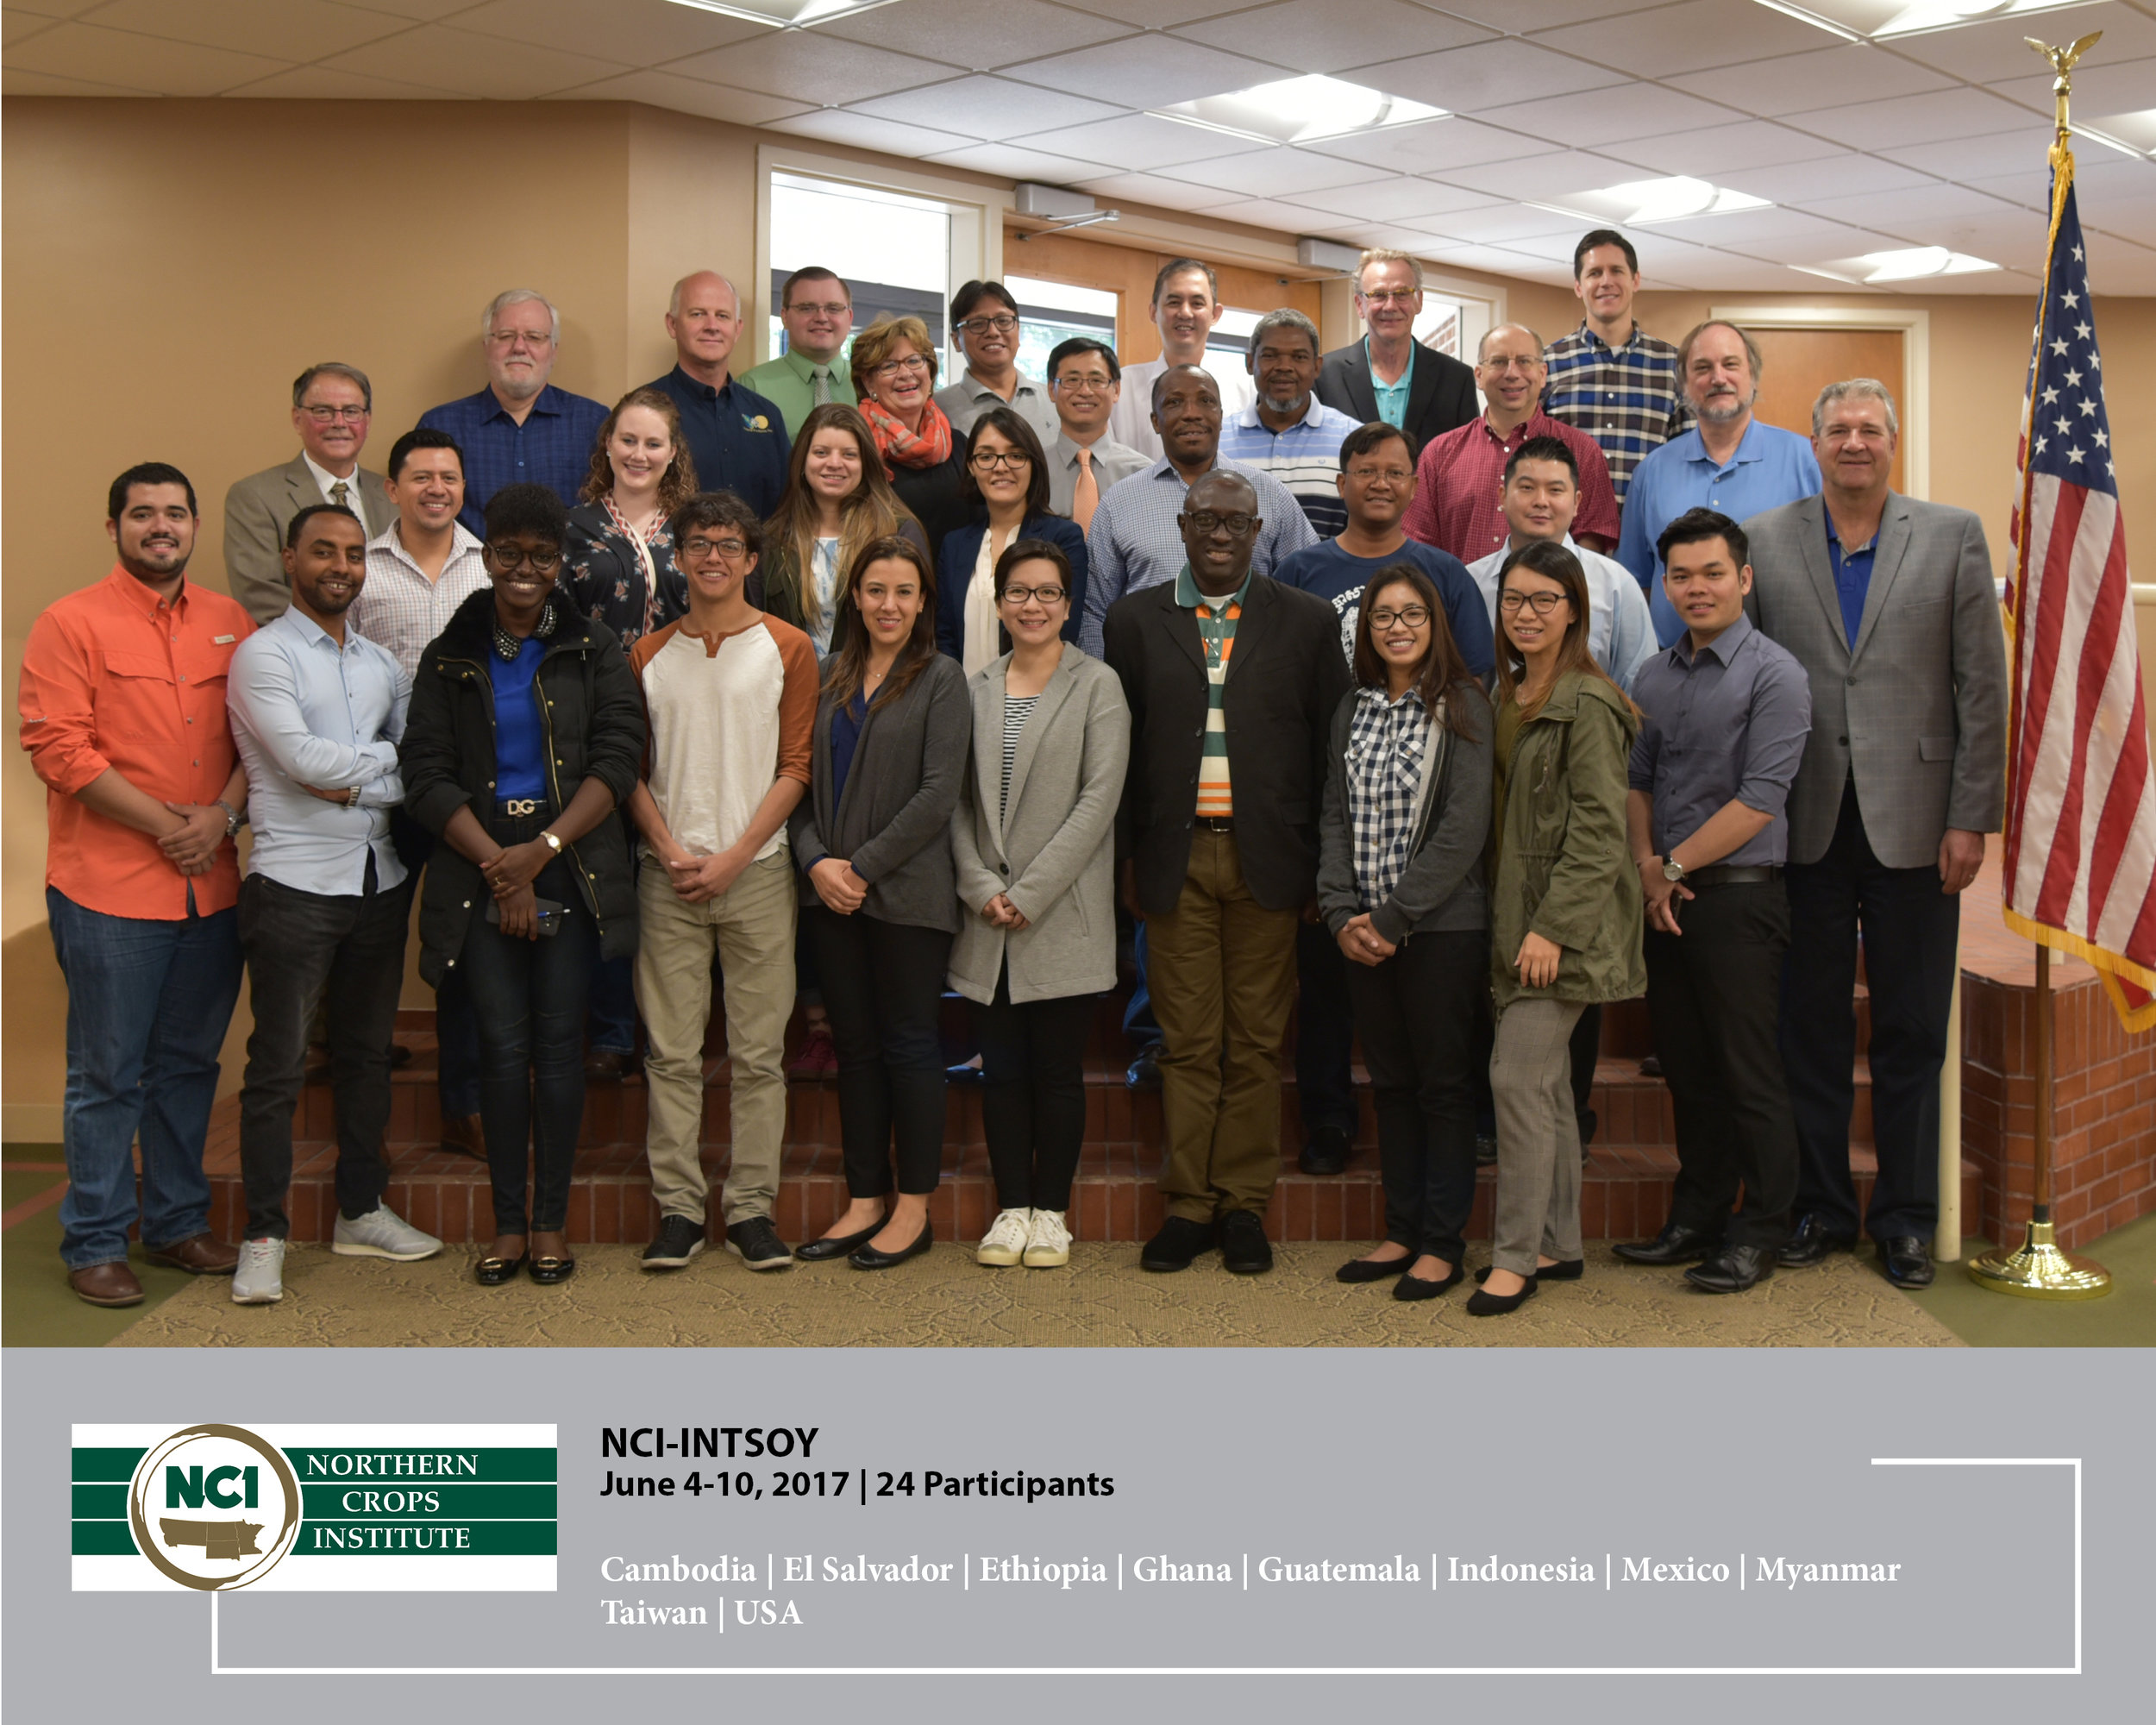 Twenty-four participants from 10 different countries participated in the successful 2017 NCI-INTSOY course during June 5-10.